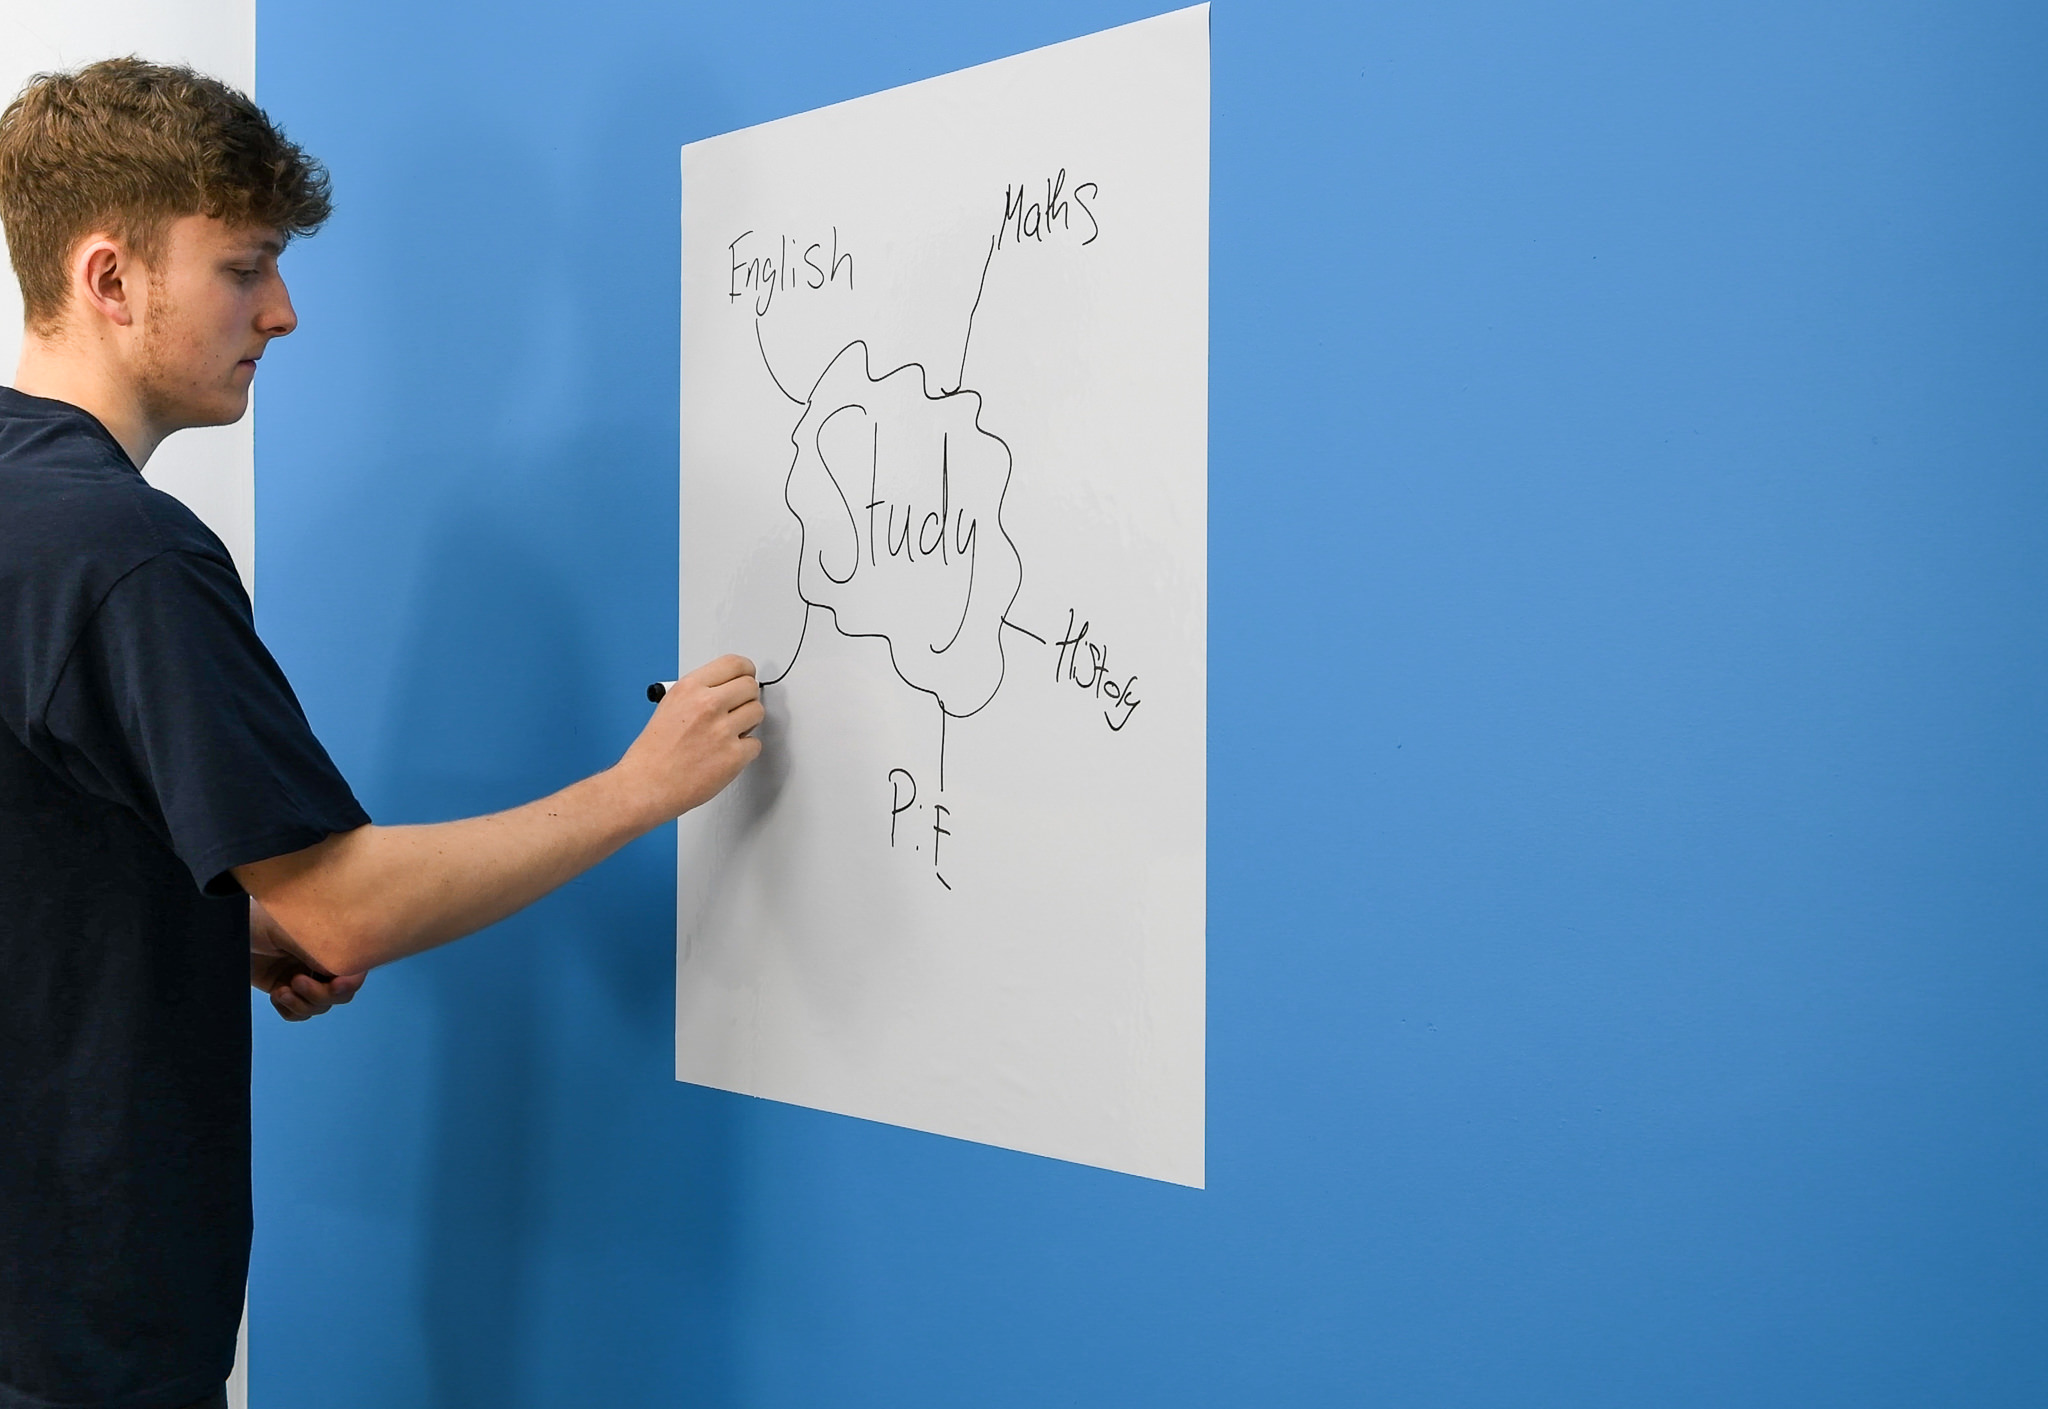 A1 Magic Whiteboard on wall